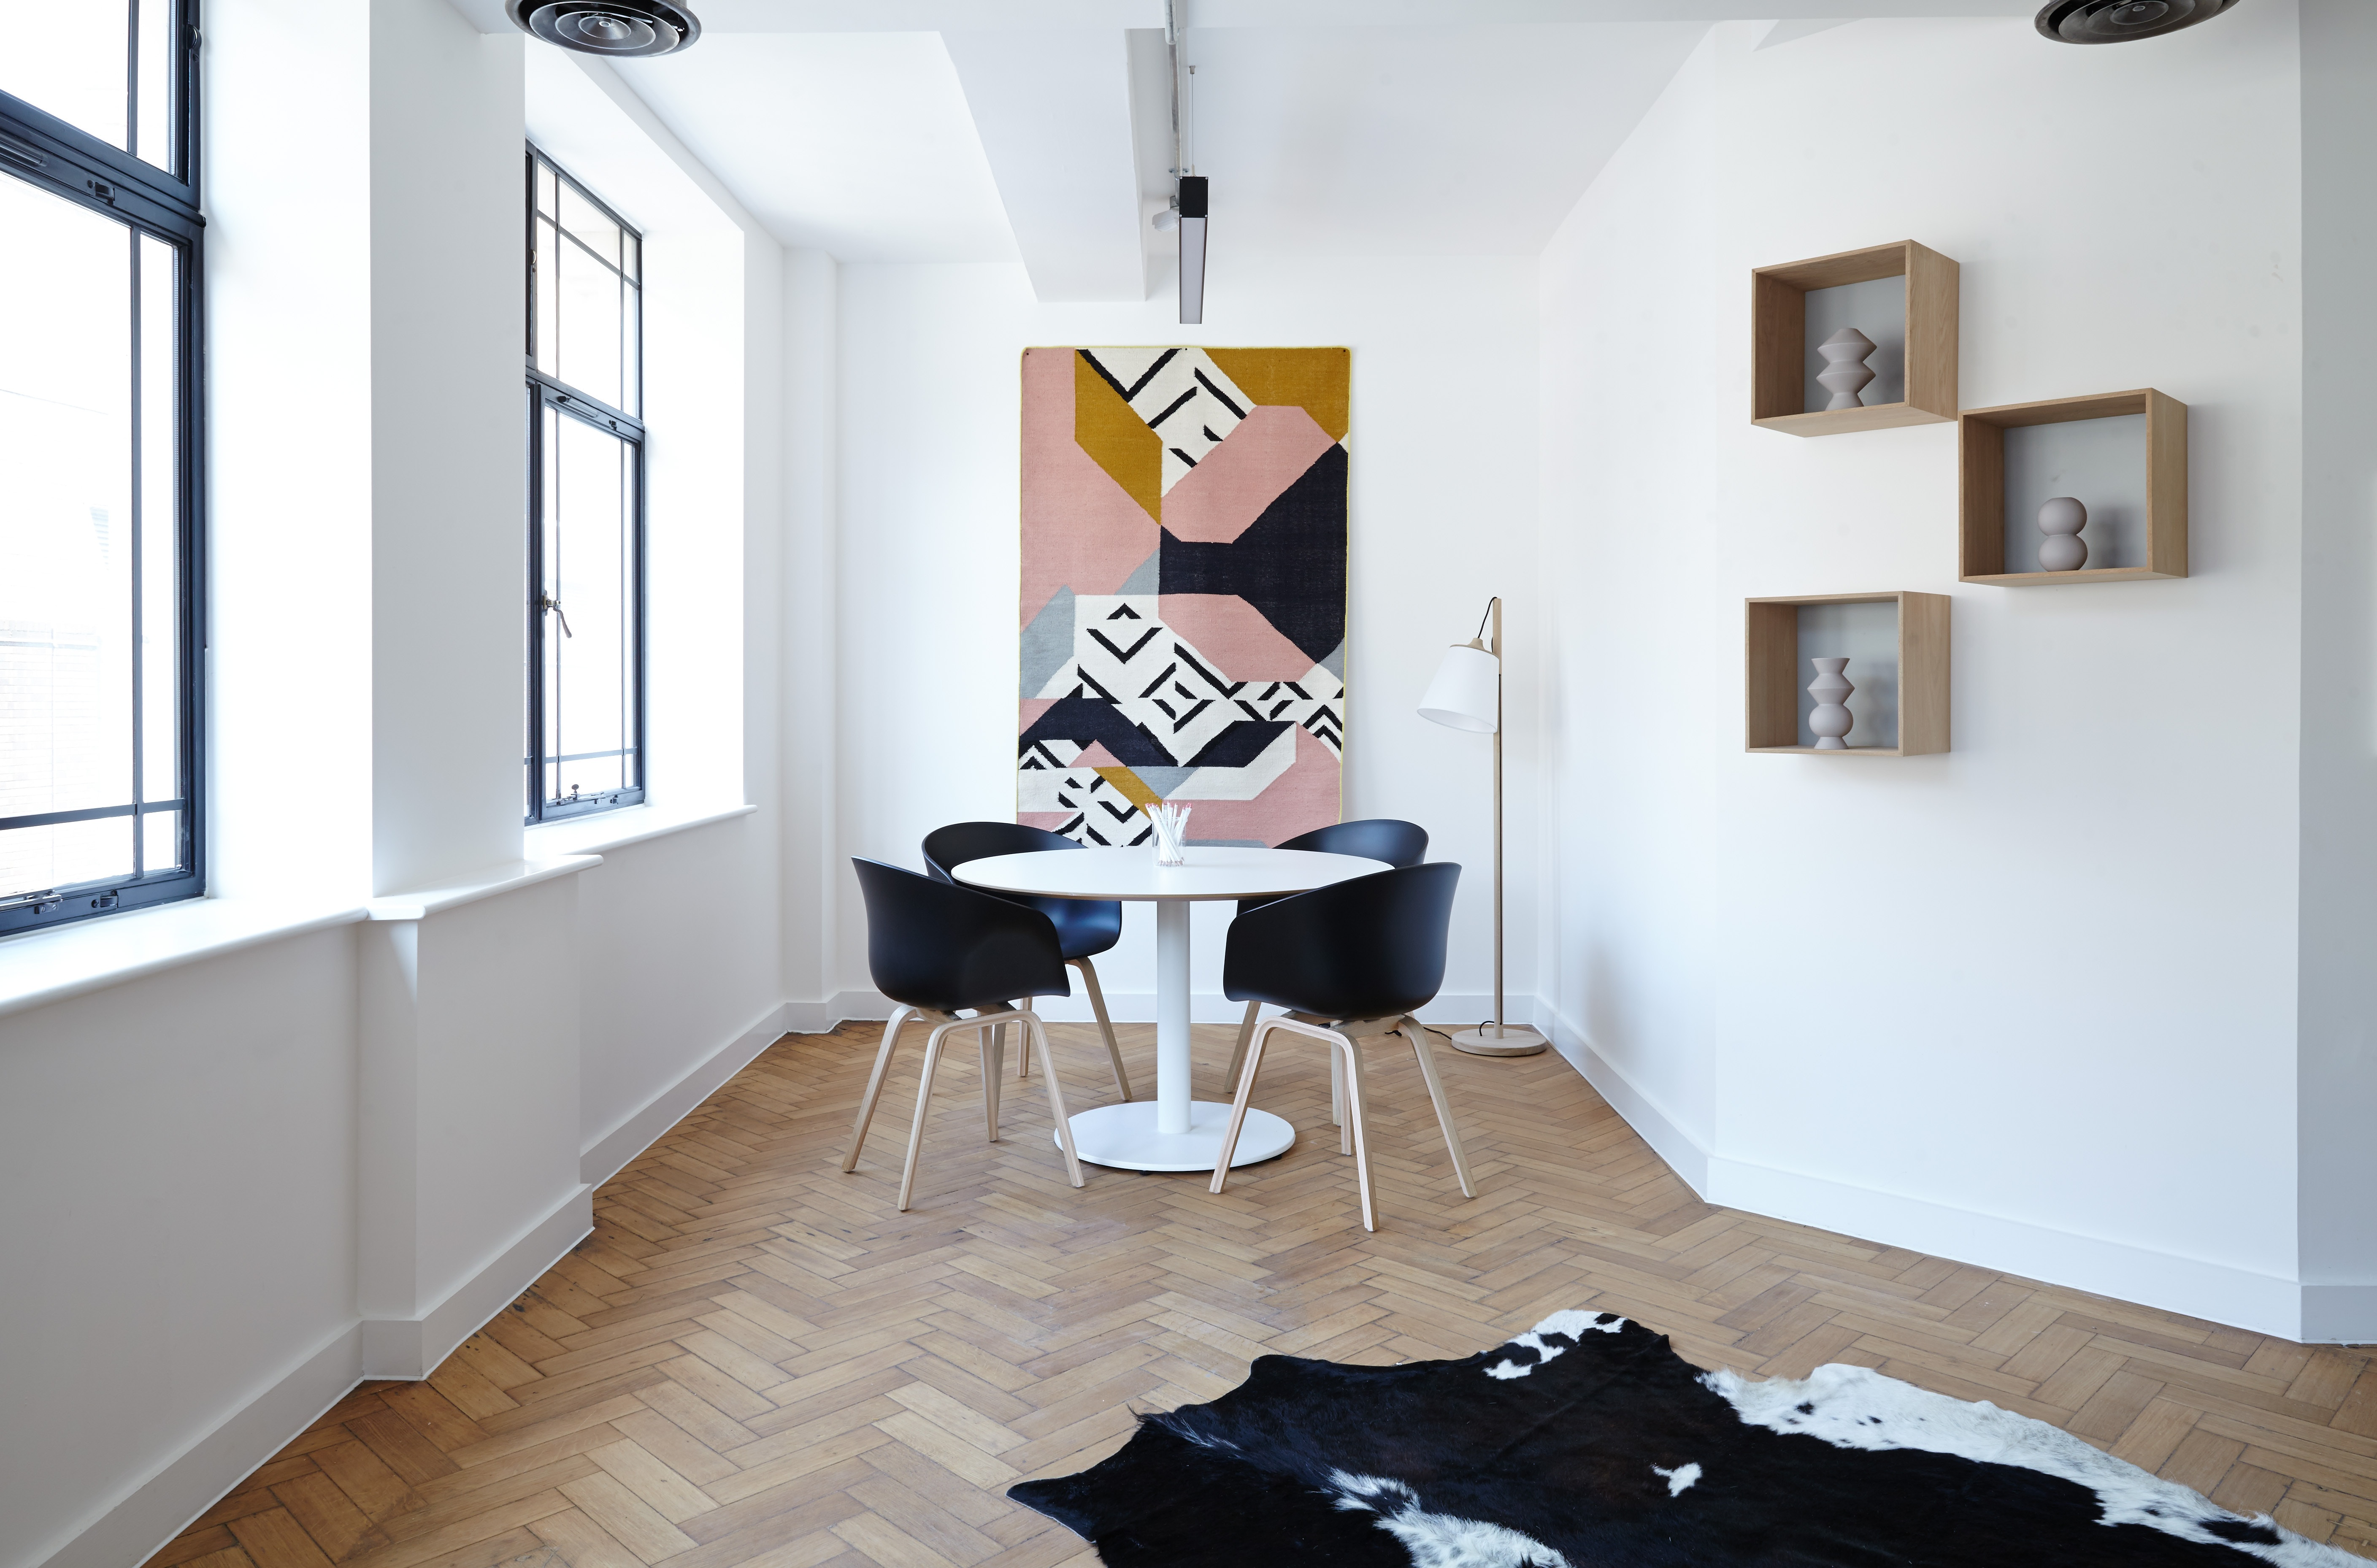 image of an apartment with plenty of natural light, wood flooring, a cowhide rug in the corner, and four black chairs around a circular white table. there are lightboxes and art on the walls.